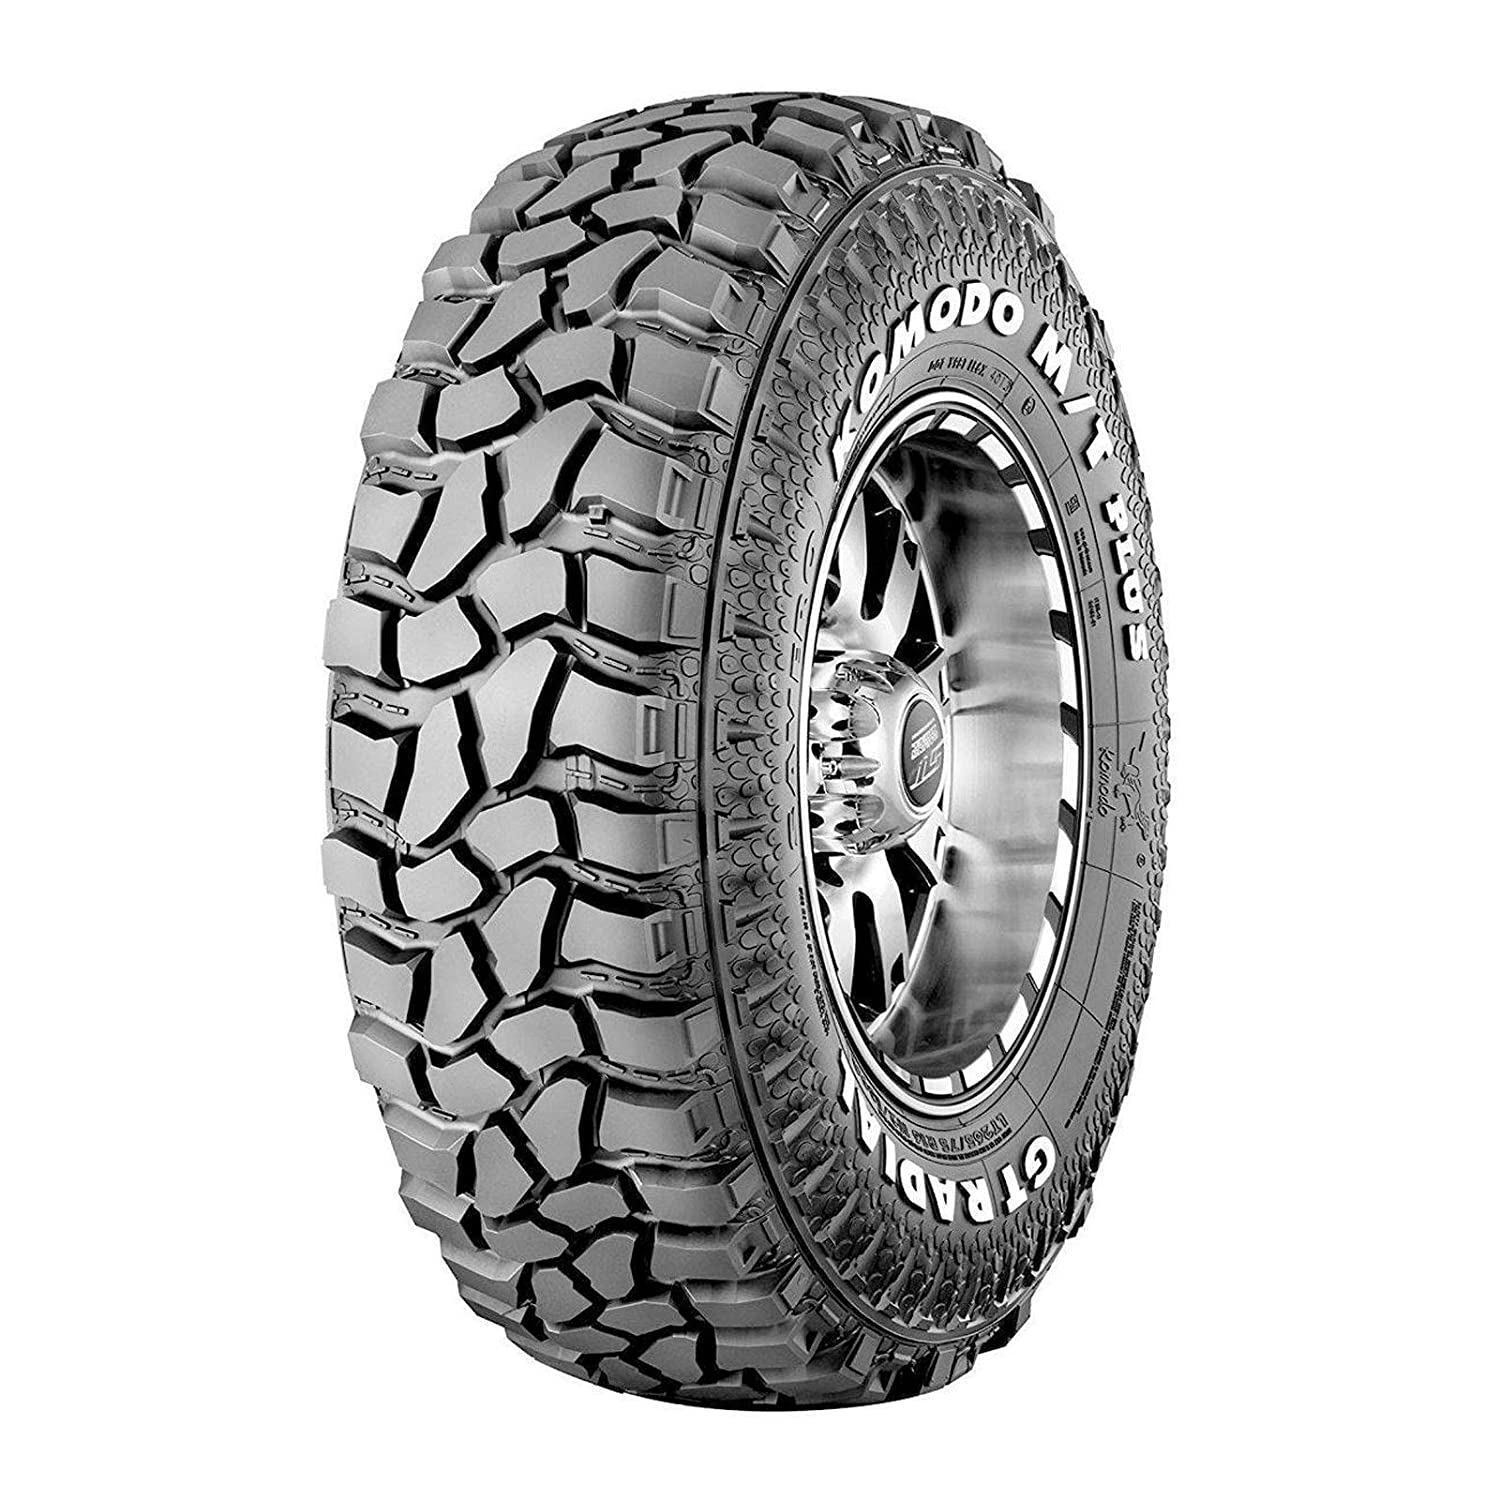 GT Radial Komodo MT+ Off- Road Radial Tire One Size 108Q